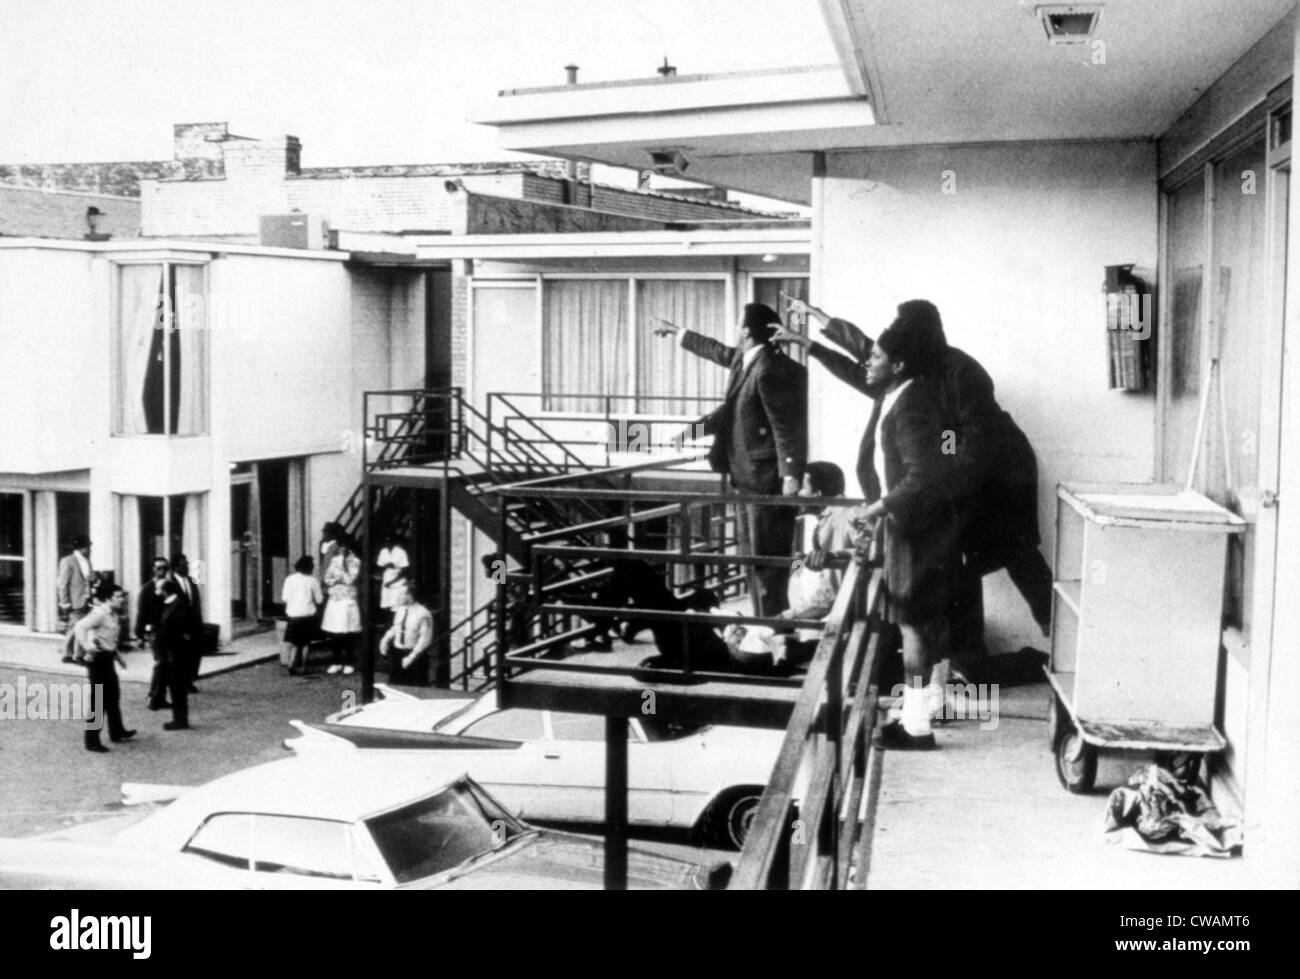 MARTIN LUTHER KING, JR assassination, 1968.. Courtesy: CSU Archives / Everett Collection - Stock Image